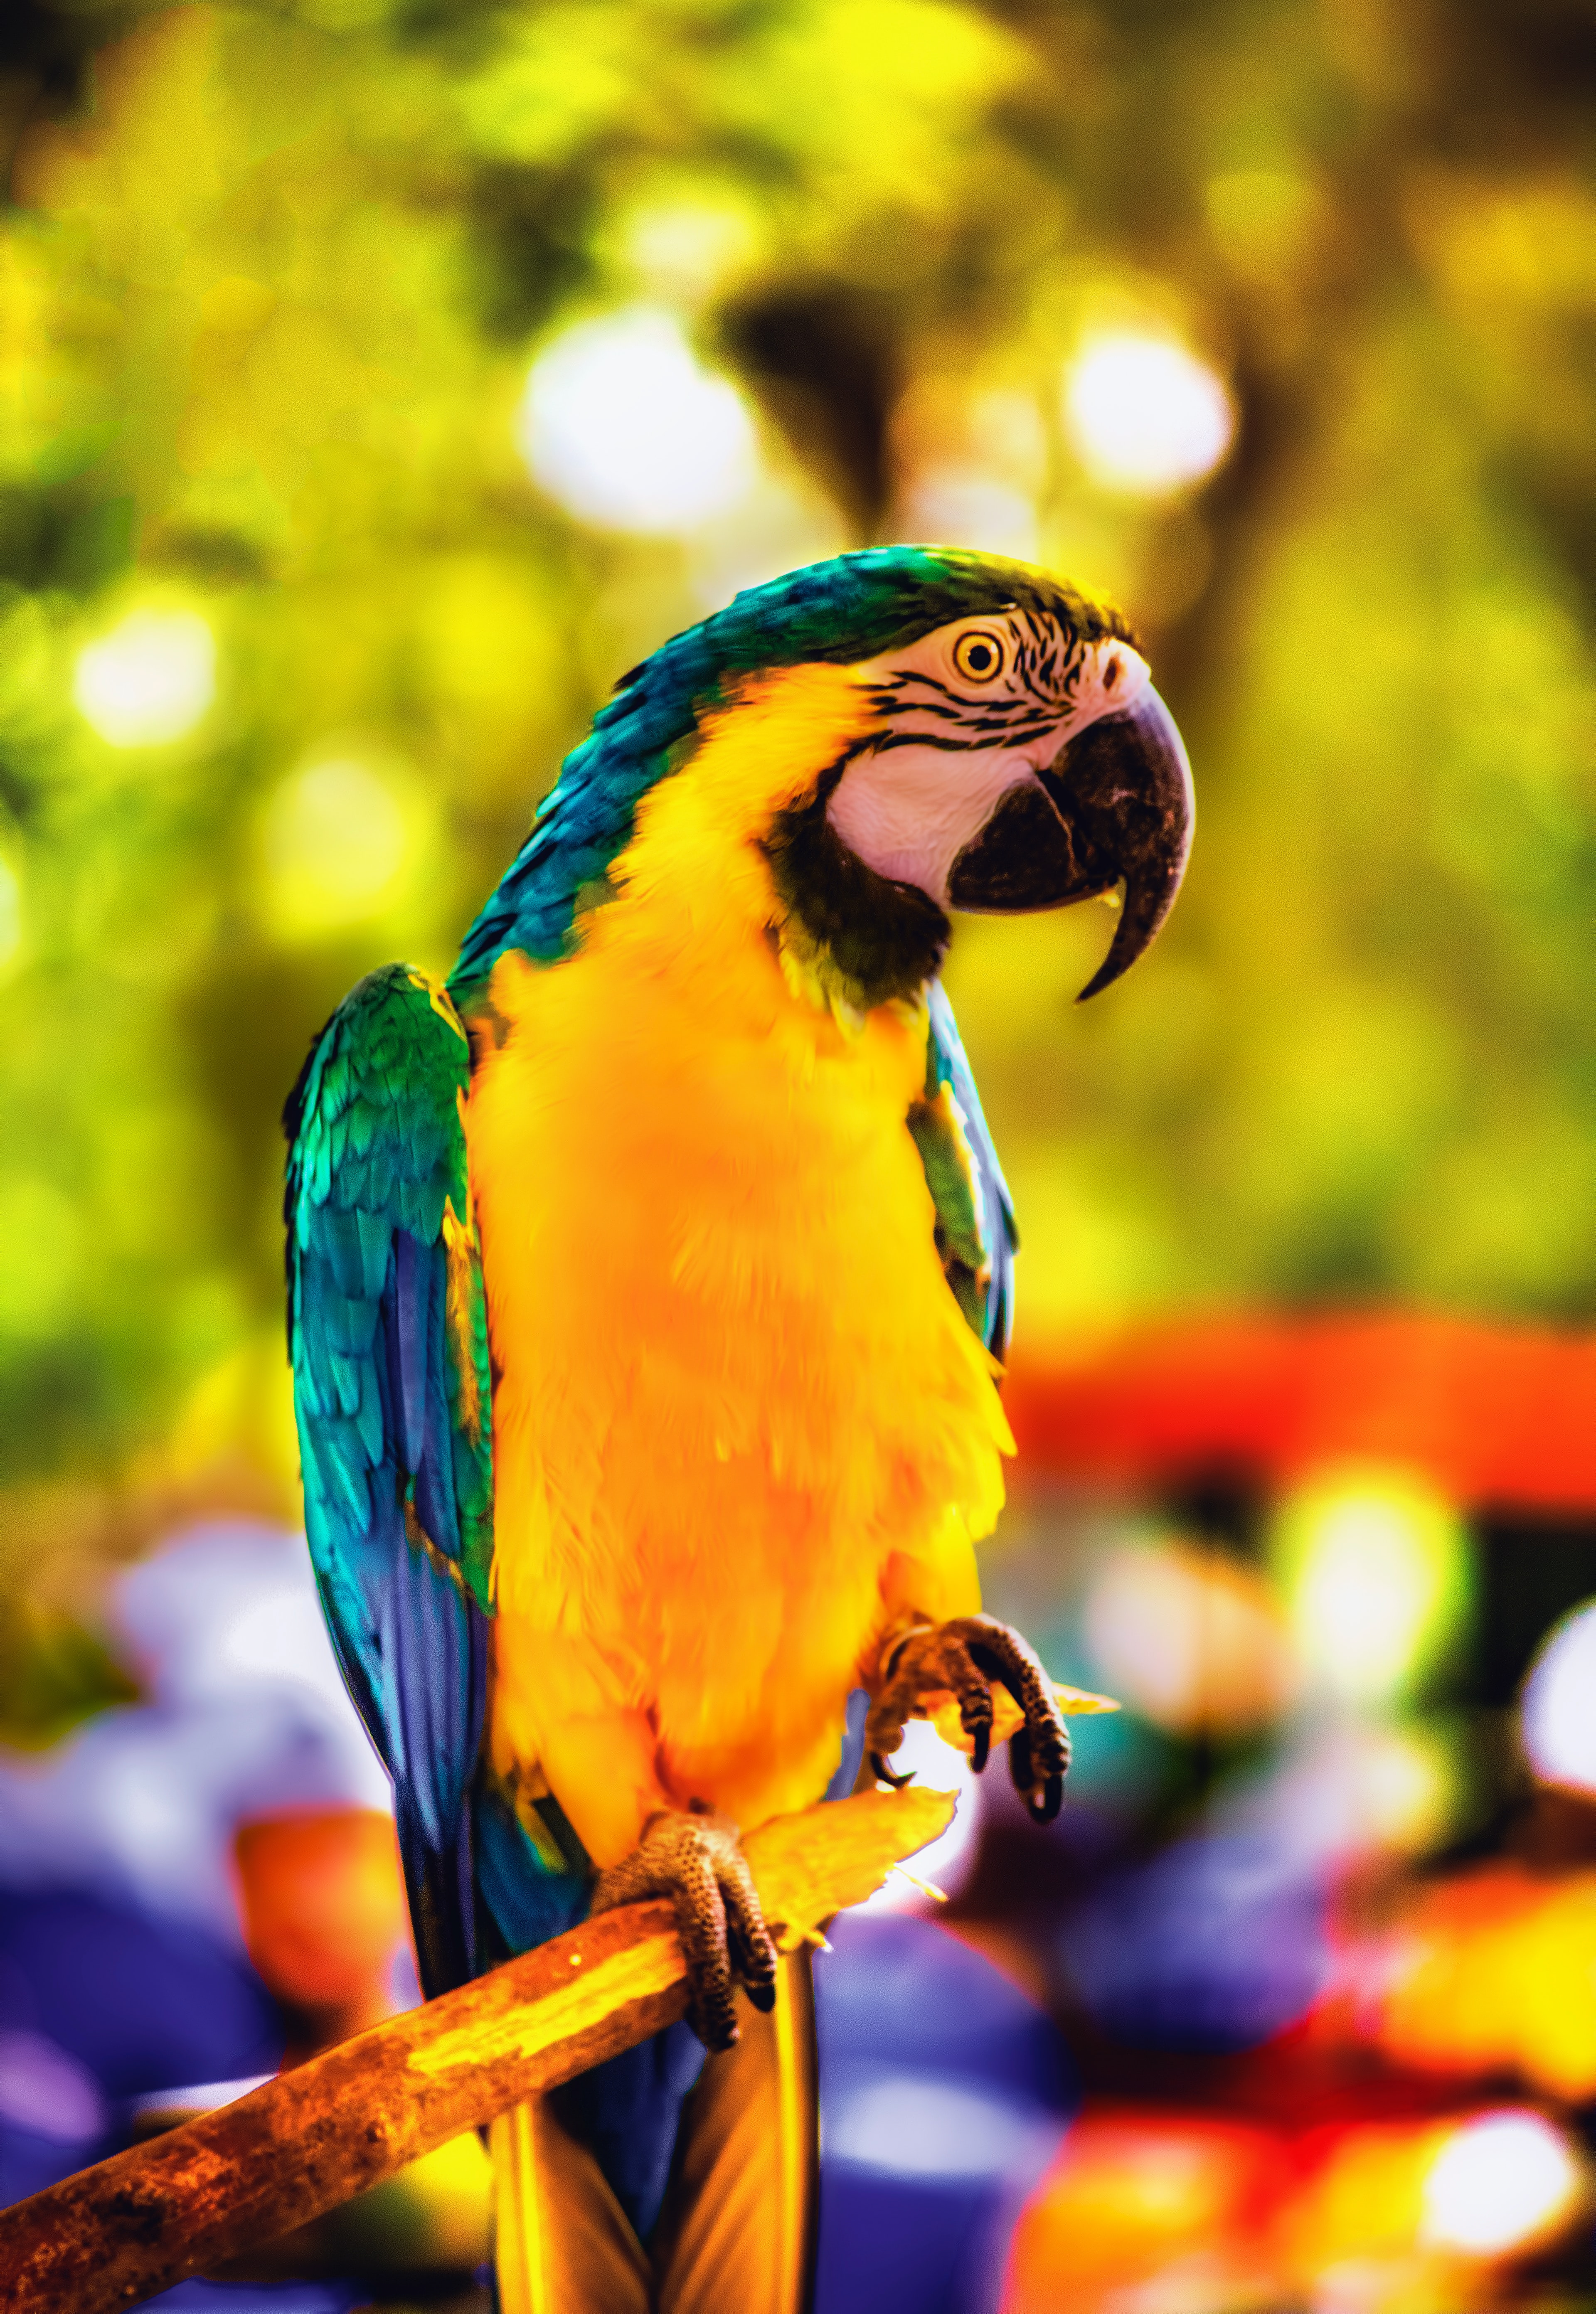 83996 download wallpaper Animals, Macaw, Parrots, Bird, Bright, Branch screensavers and pictures for free